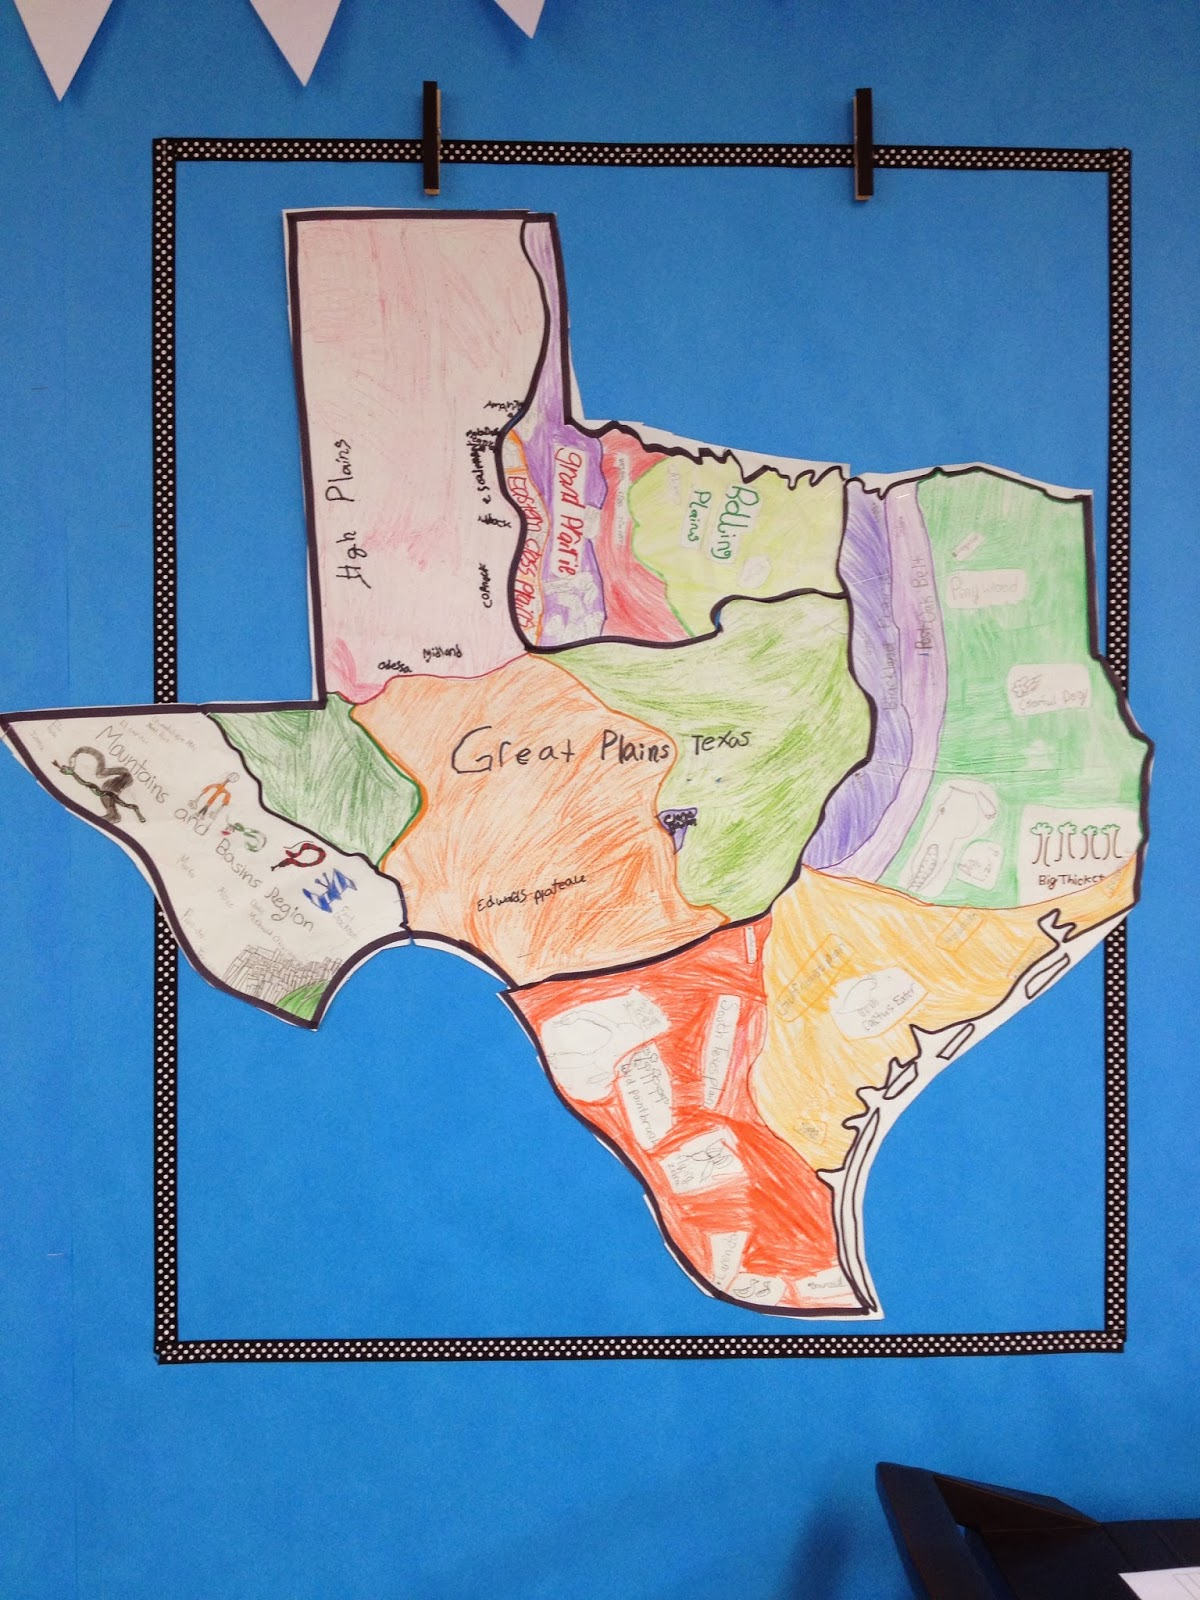 Regions Of Texas Map 4th Grade.Texas Resources By Region Related Keywords Suggestions Texas